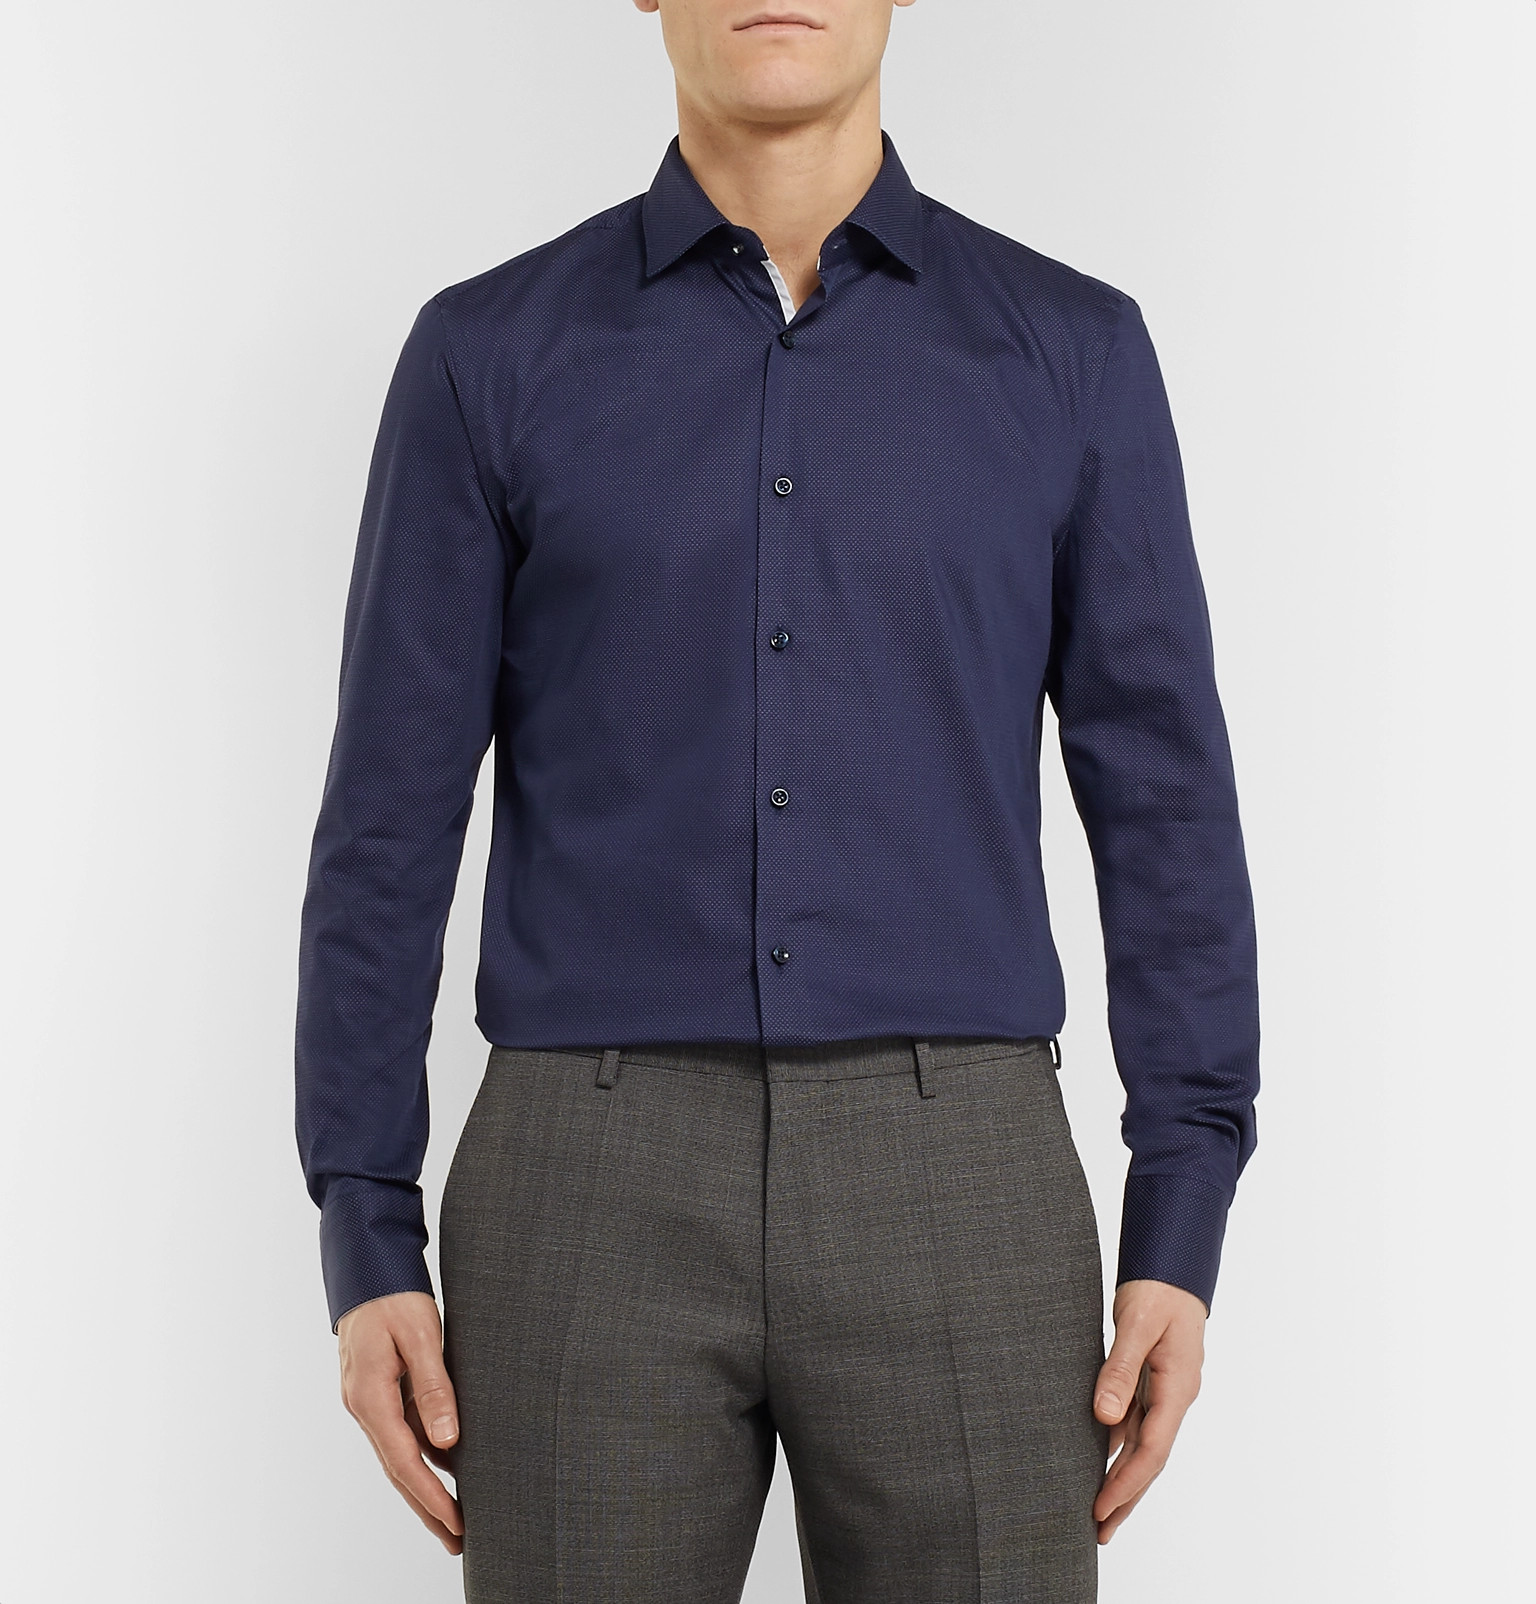 a18d8d804 Hugo BossNavy Jesse Slim-Fit Pin-Dot Stretch Cotton-Poplin Shirt. Was  £91.67Now £55 / Approx. SGD $94.9640% off. Tap to Close. 1